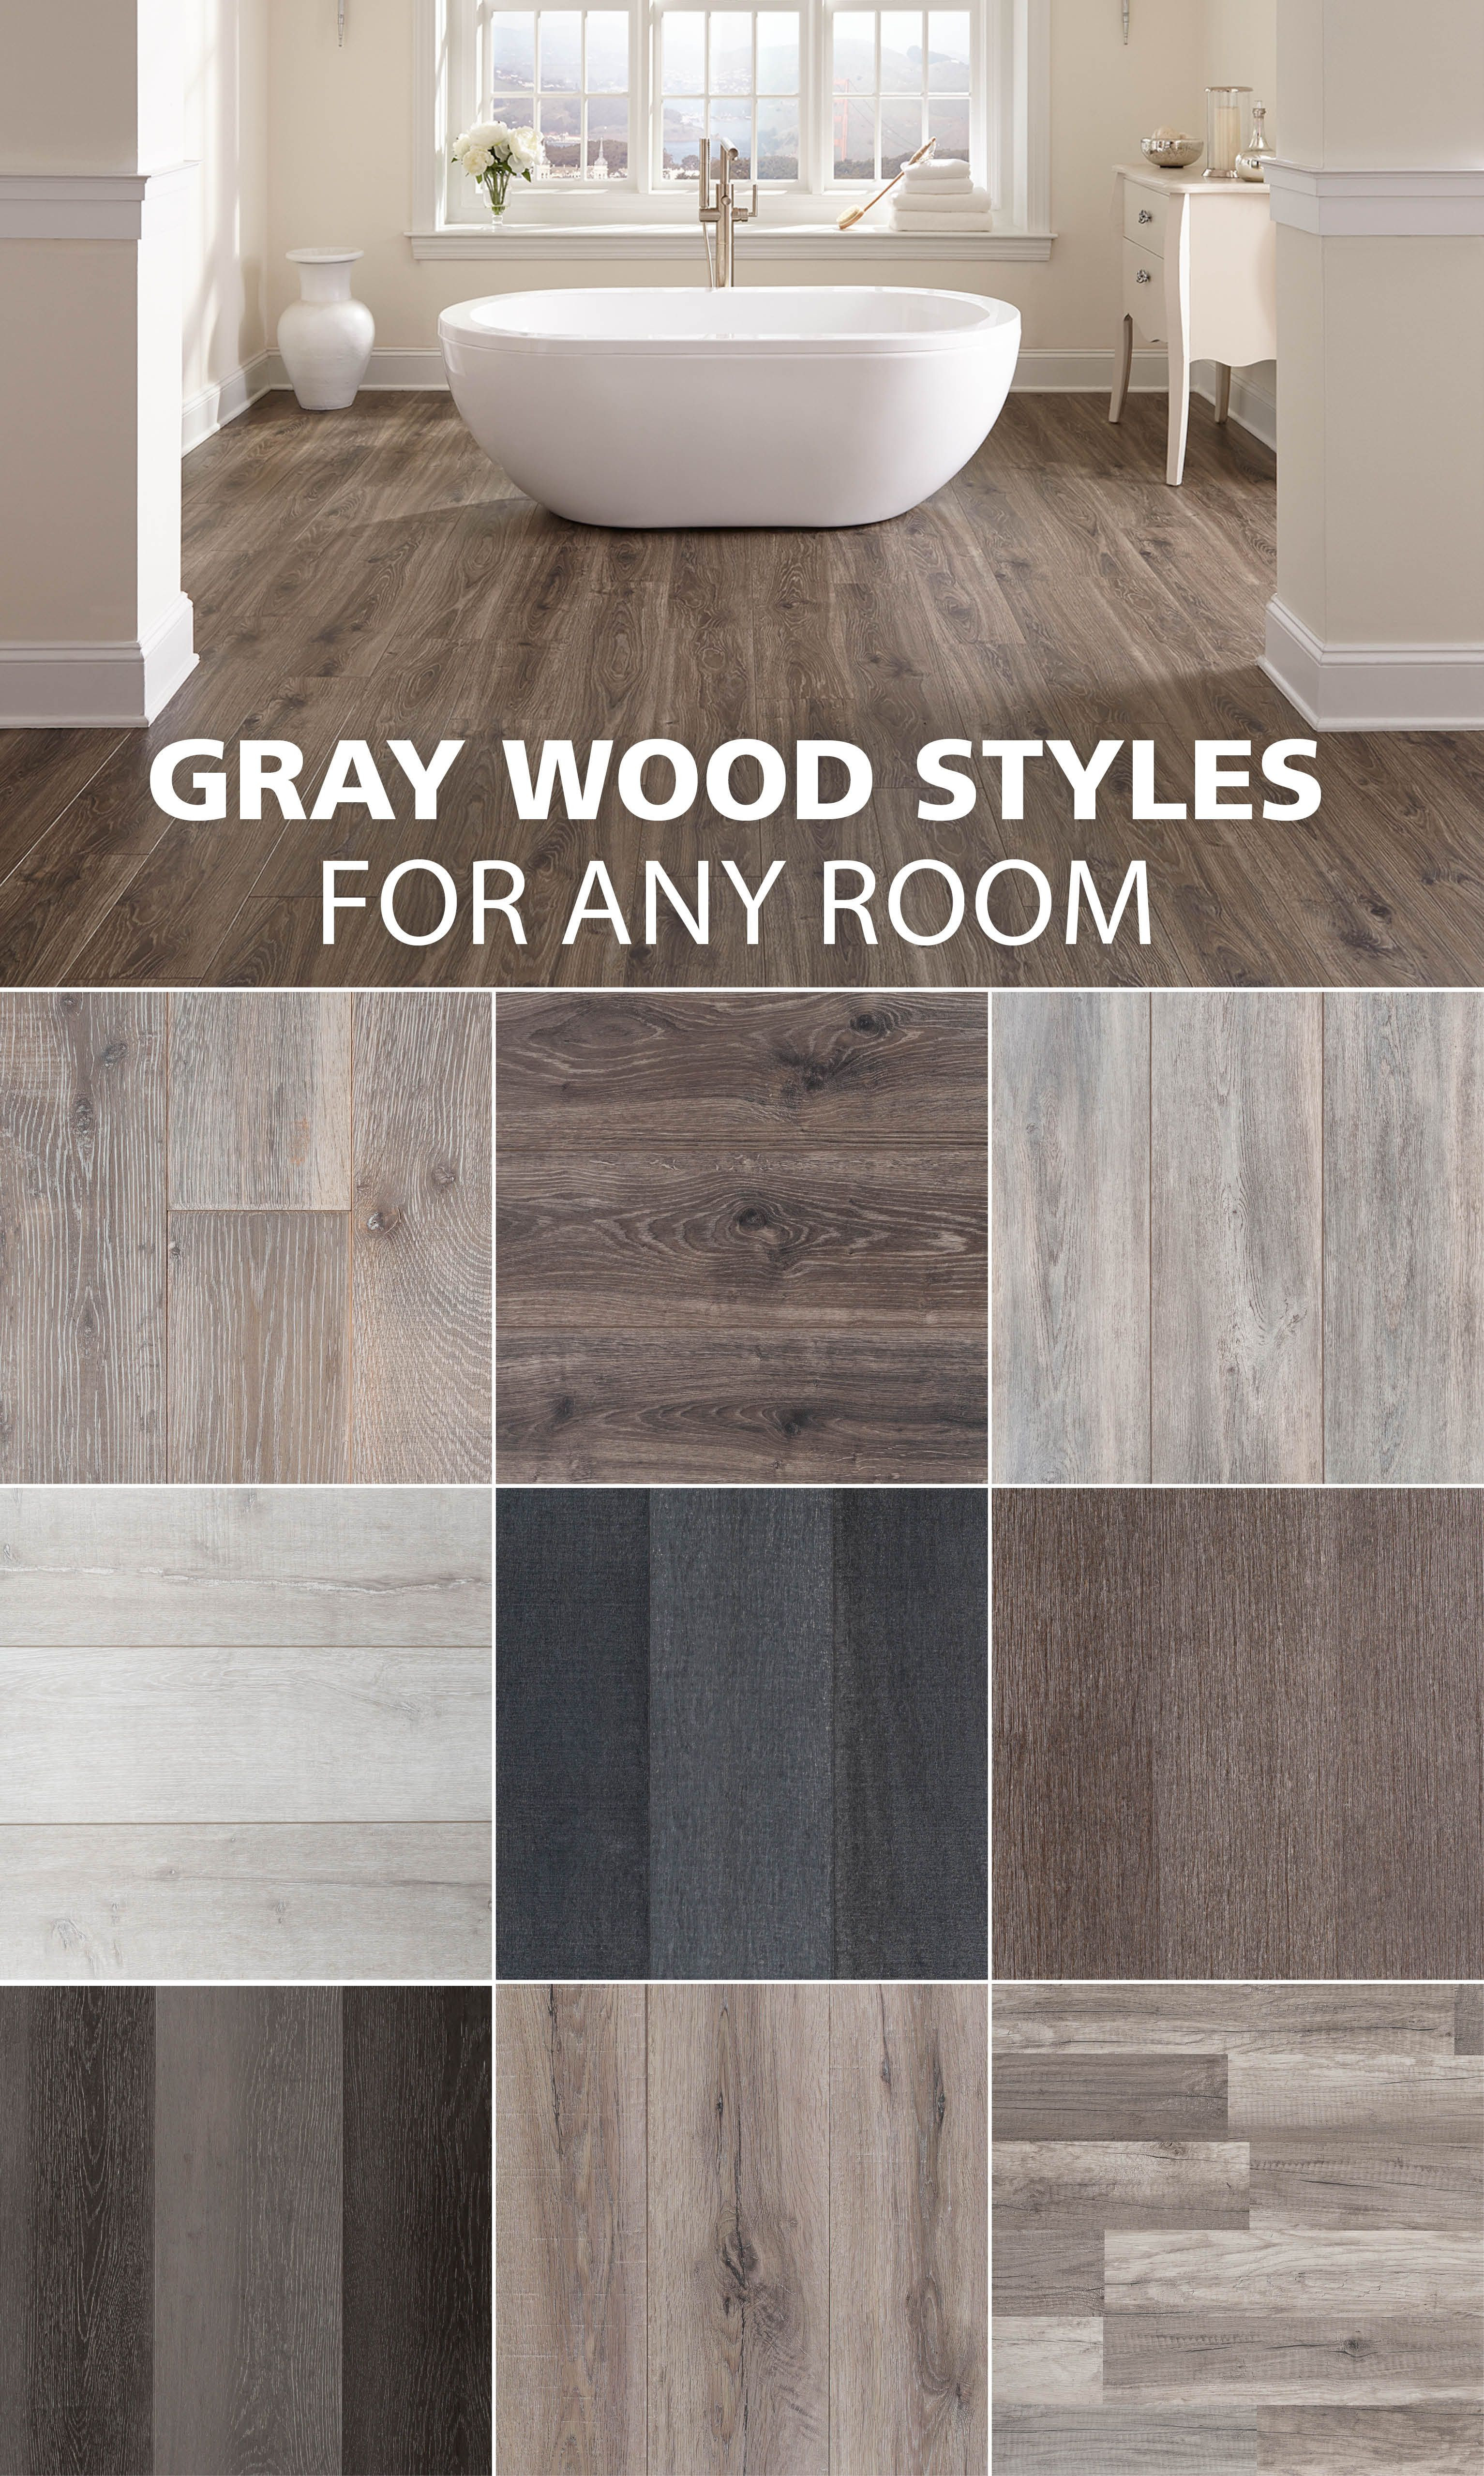 bamboo hardwood flooring costco of here are some of our favorite gray wood look styles home decor with here are some of our favorite gray wood look styles gray hardwood floors light